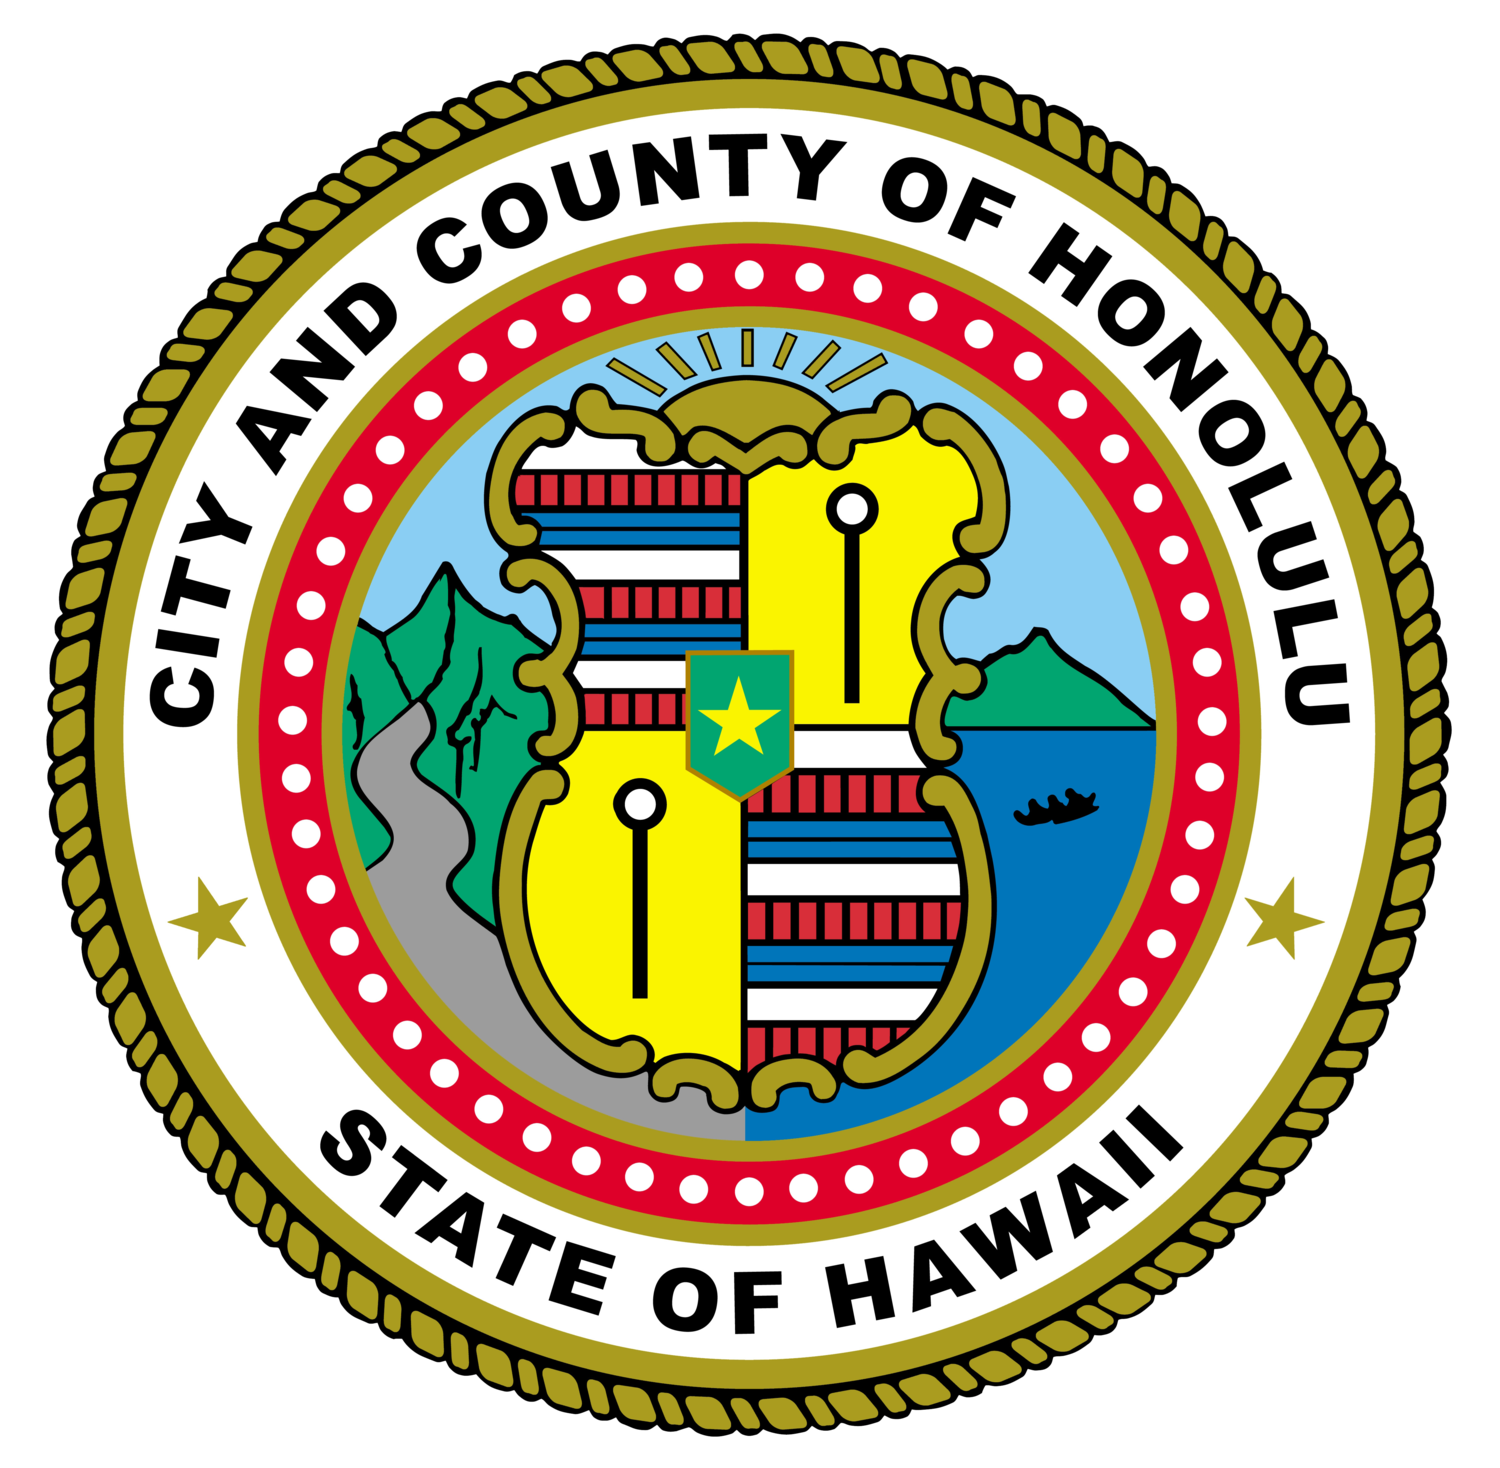 City and County of Honolulu Office of Climate Change, Sustainability and Resiliency